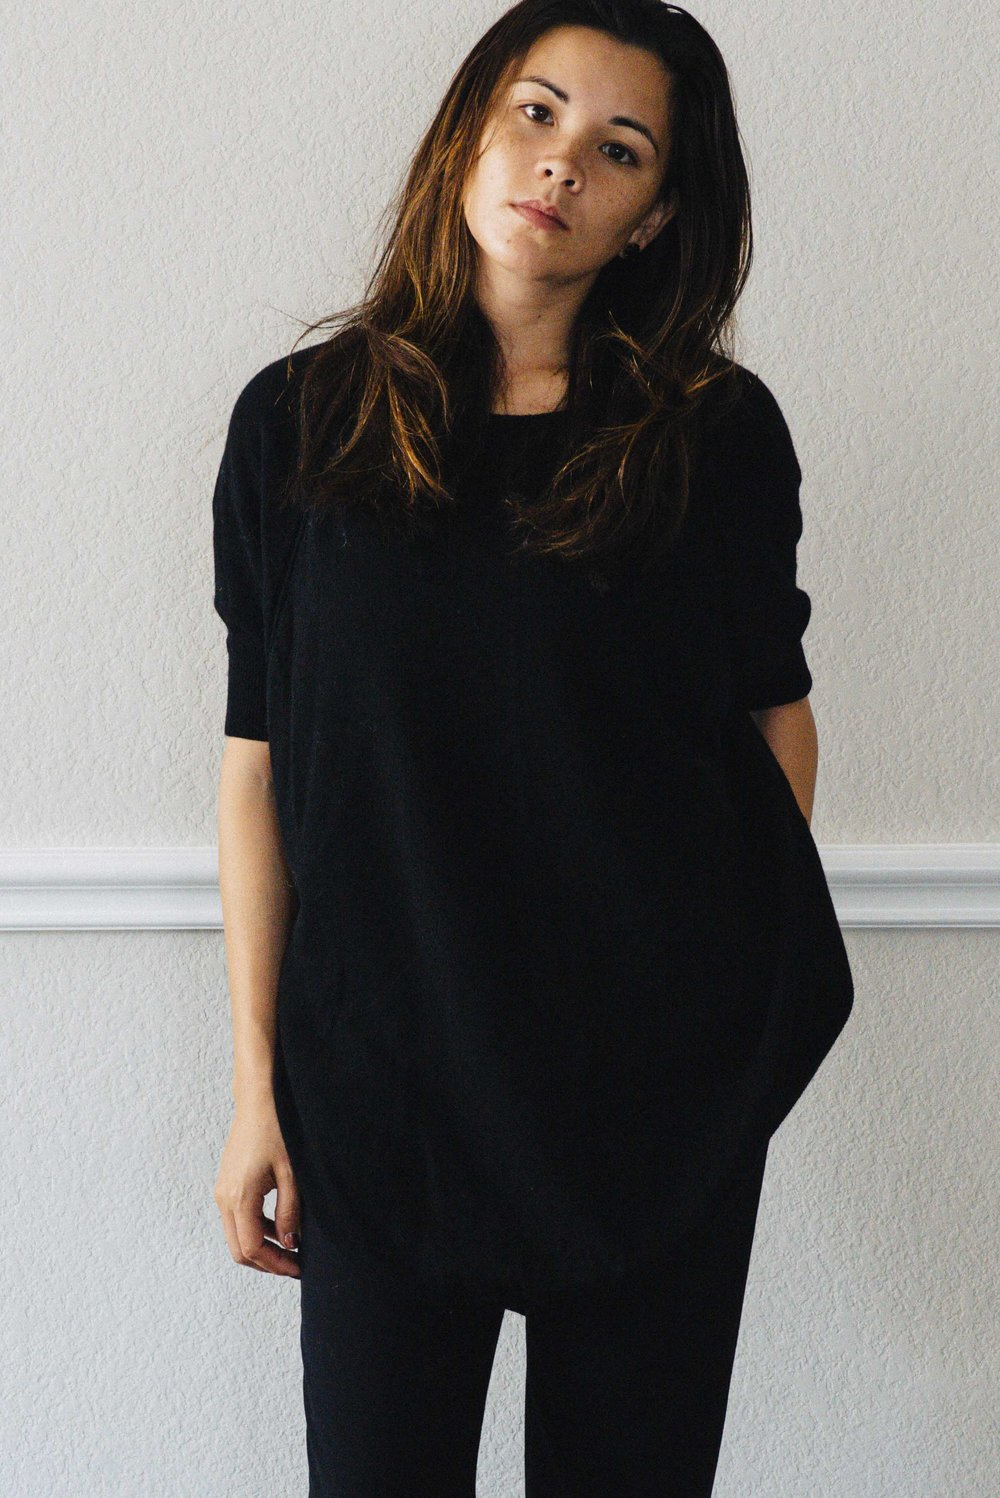 Woman in Black. A basic black capsule wardrobe outfit.